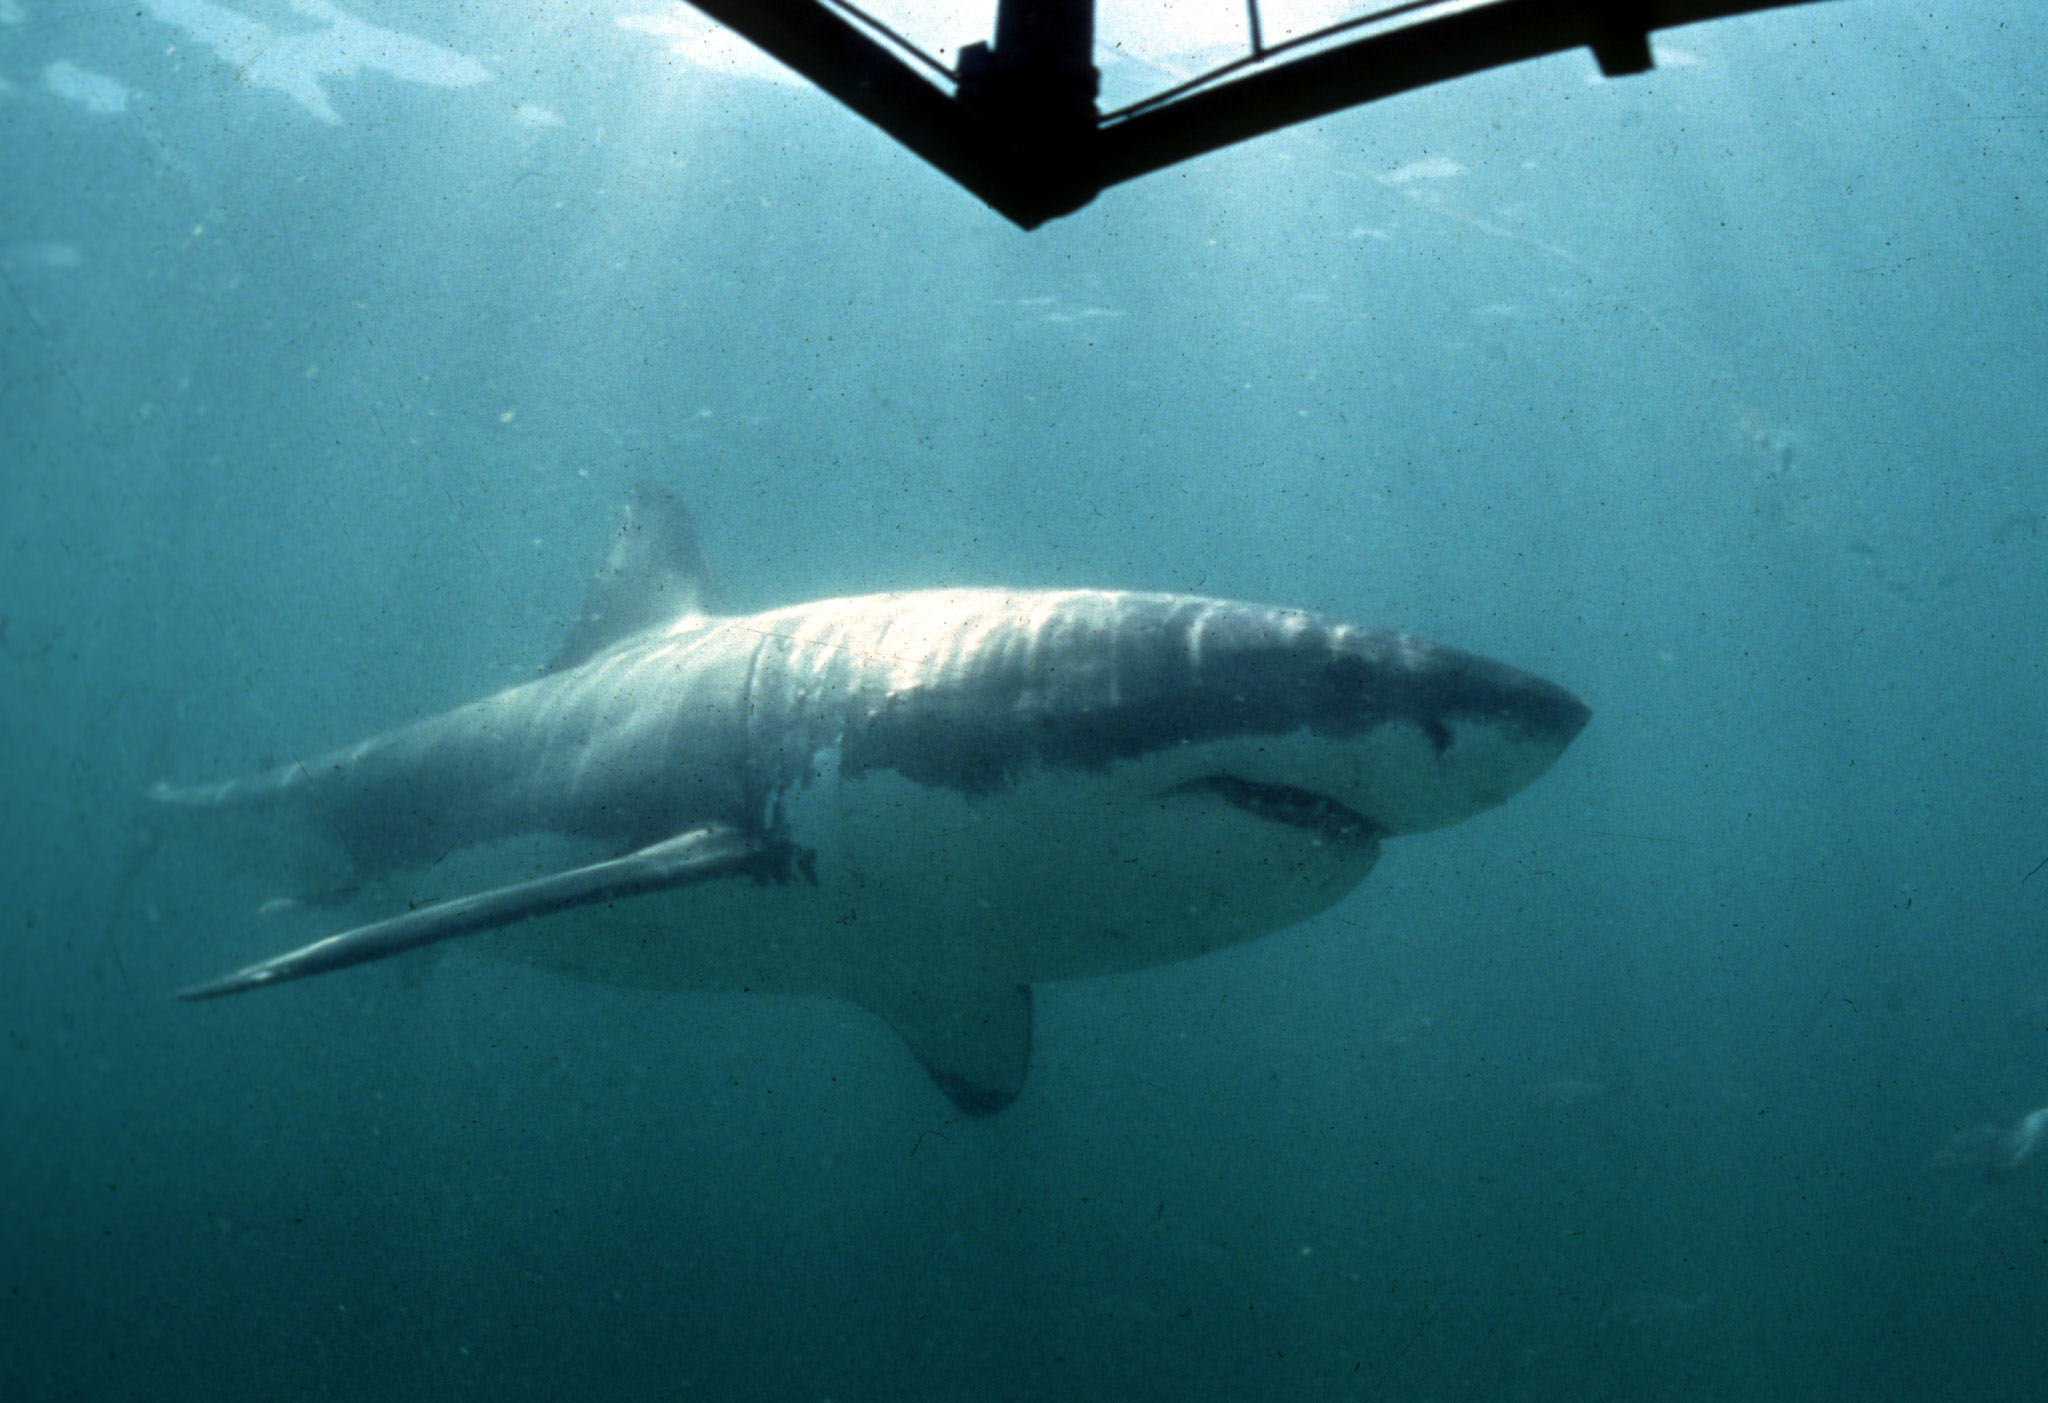 a great white shark, the new suspect in the megalodon's extinction